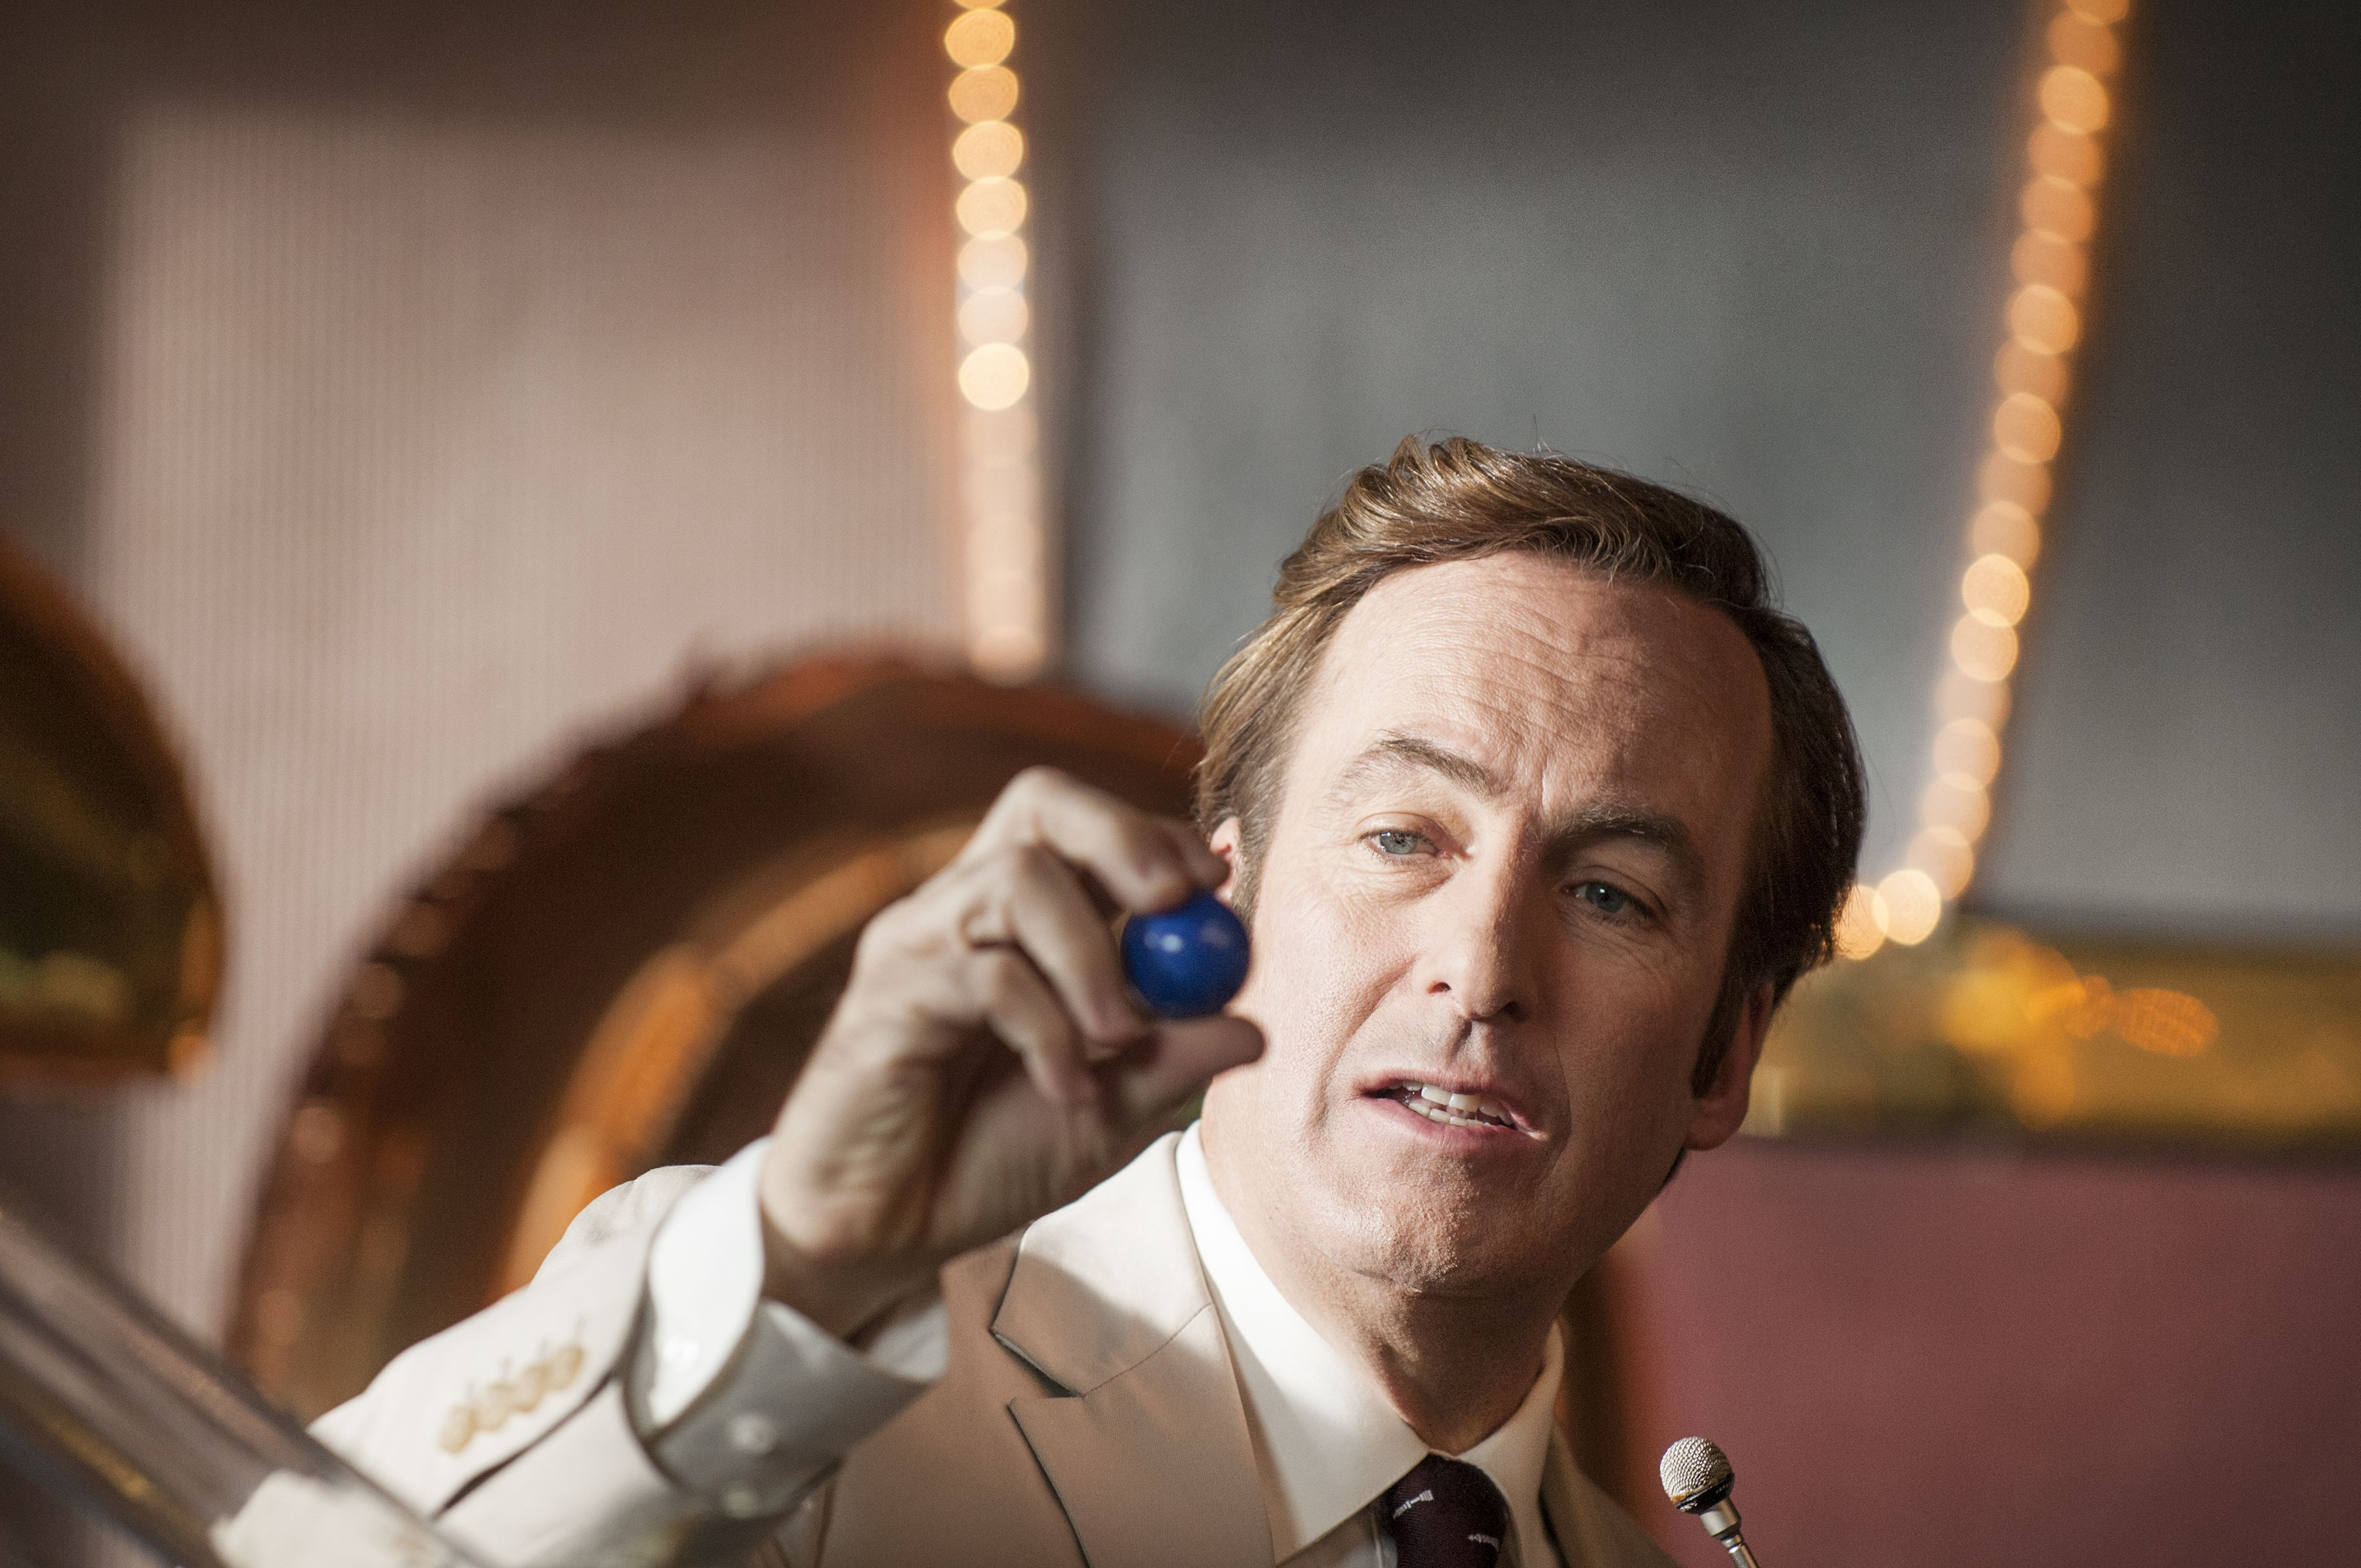 Better Call Saul References Callbacks To Breaking Bad